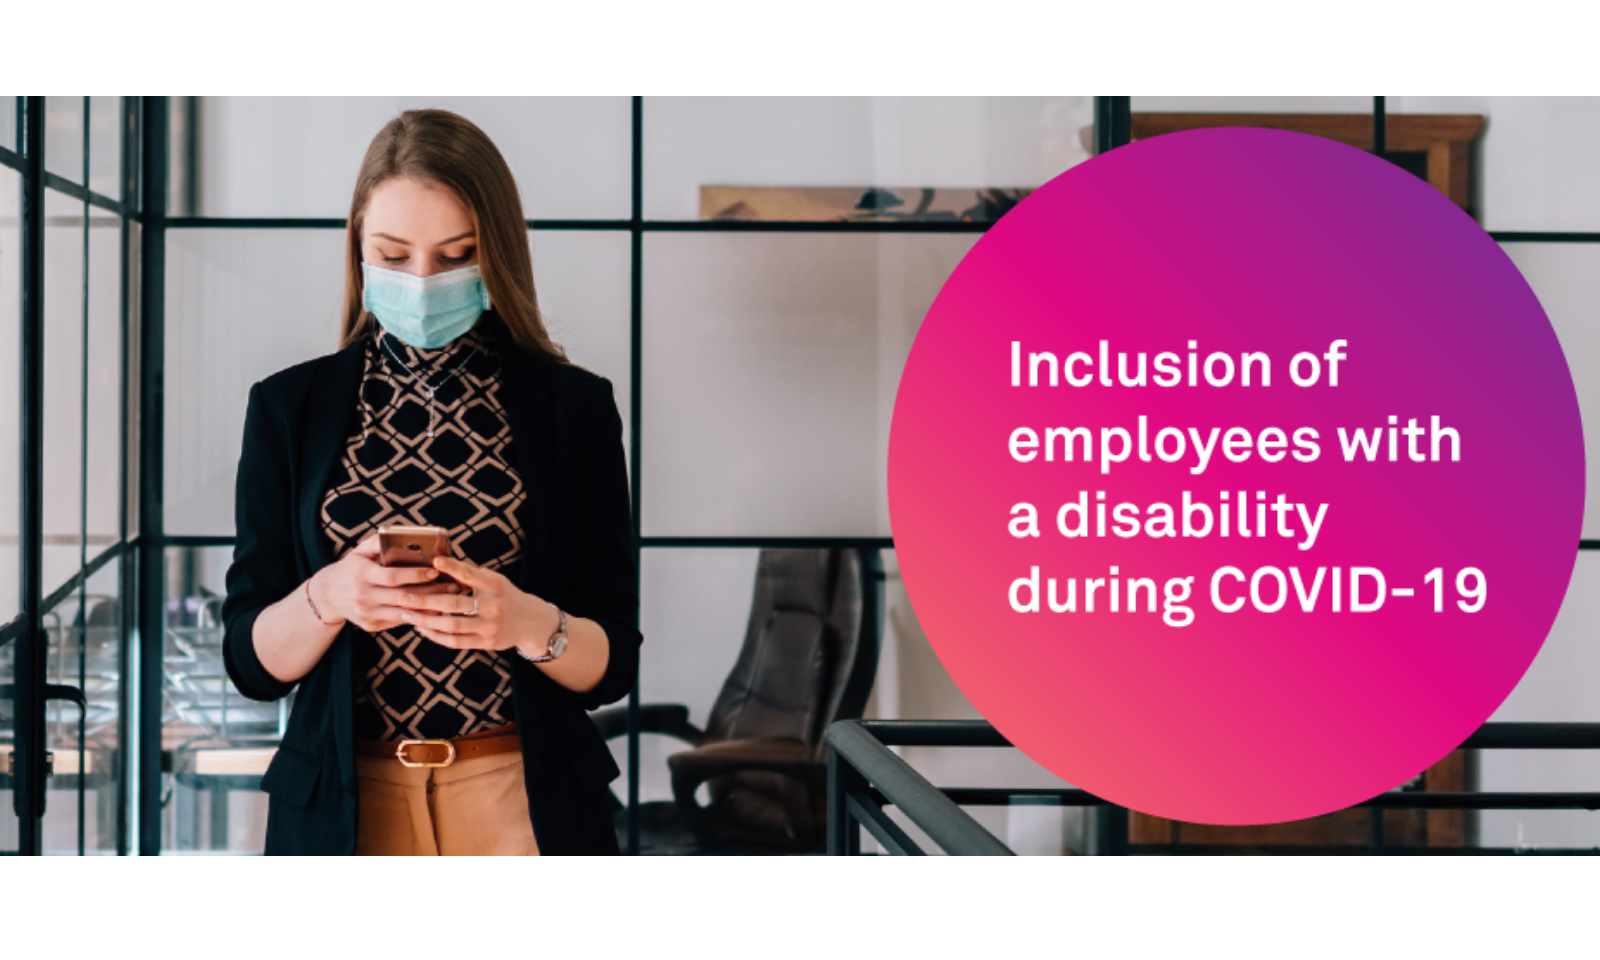 Female employee wearing mask in boardroom setting using mobile device.